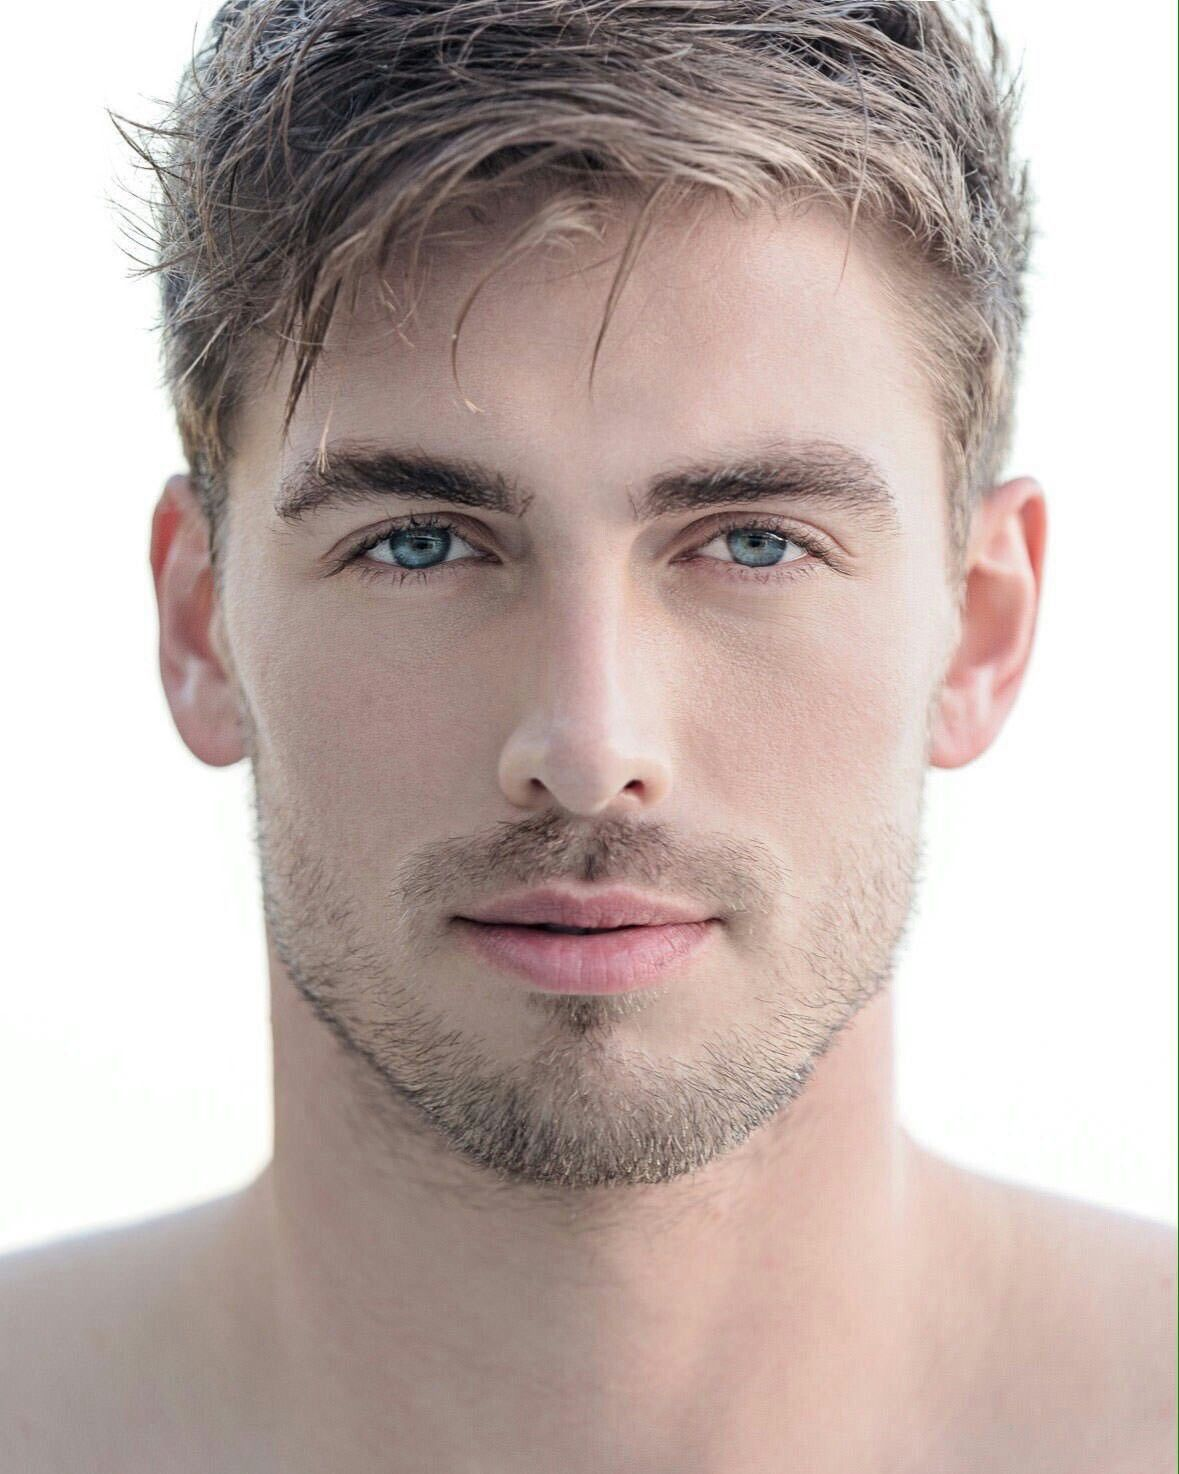 Pin By Katie Jo On Male Models Beautiful Men Faces Blonde Guys Handsome Faces